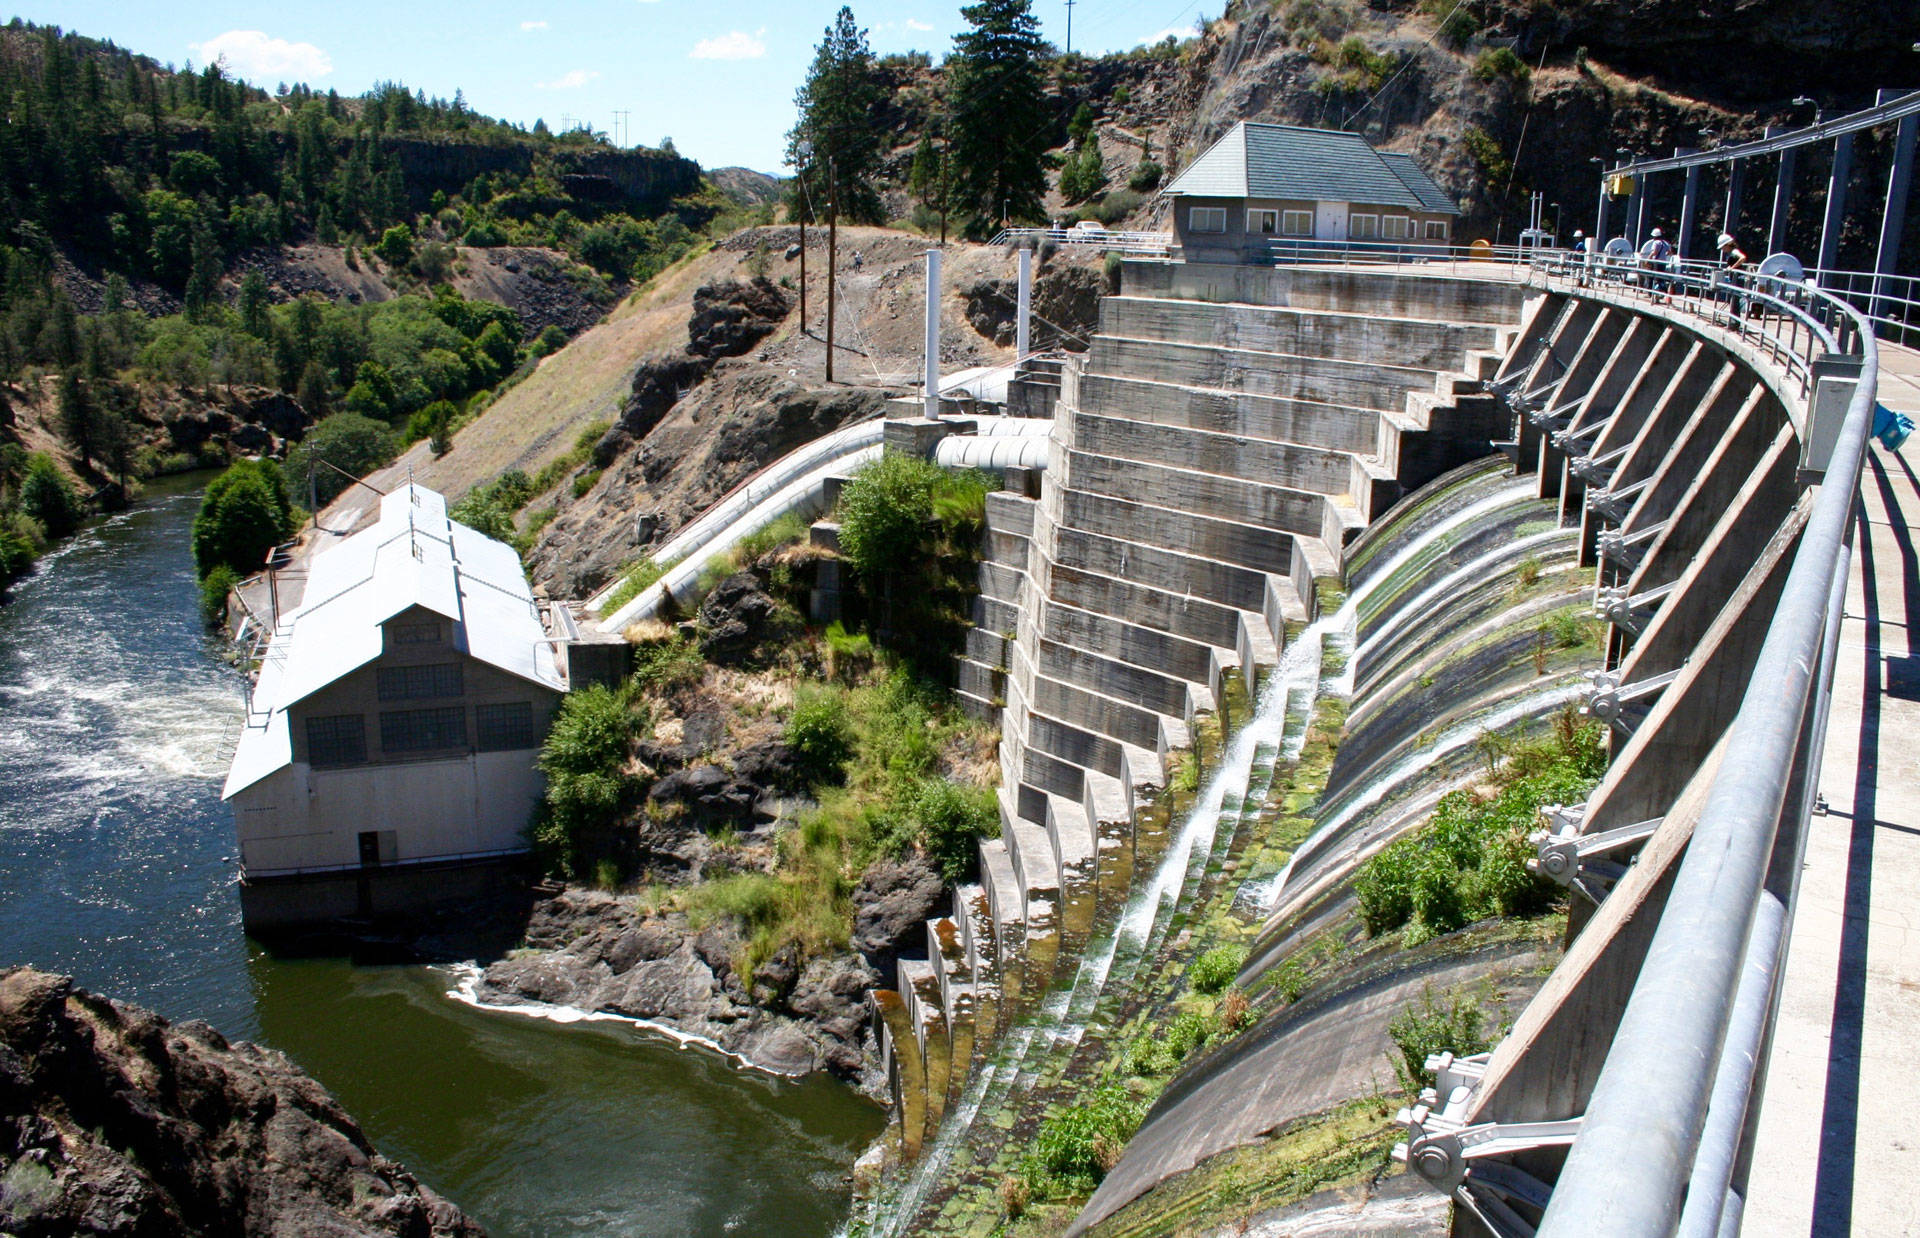 The 132-foot-high Copco 1 Dam, on the Klamath River outside Hornbrook, California, has generated power for nearly a century. Now, its owner has set in motion a plan to dismantle it, if approved by federal energy regulators. Molly Peterson/KQED